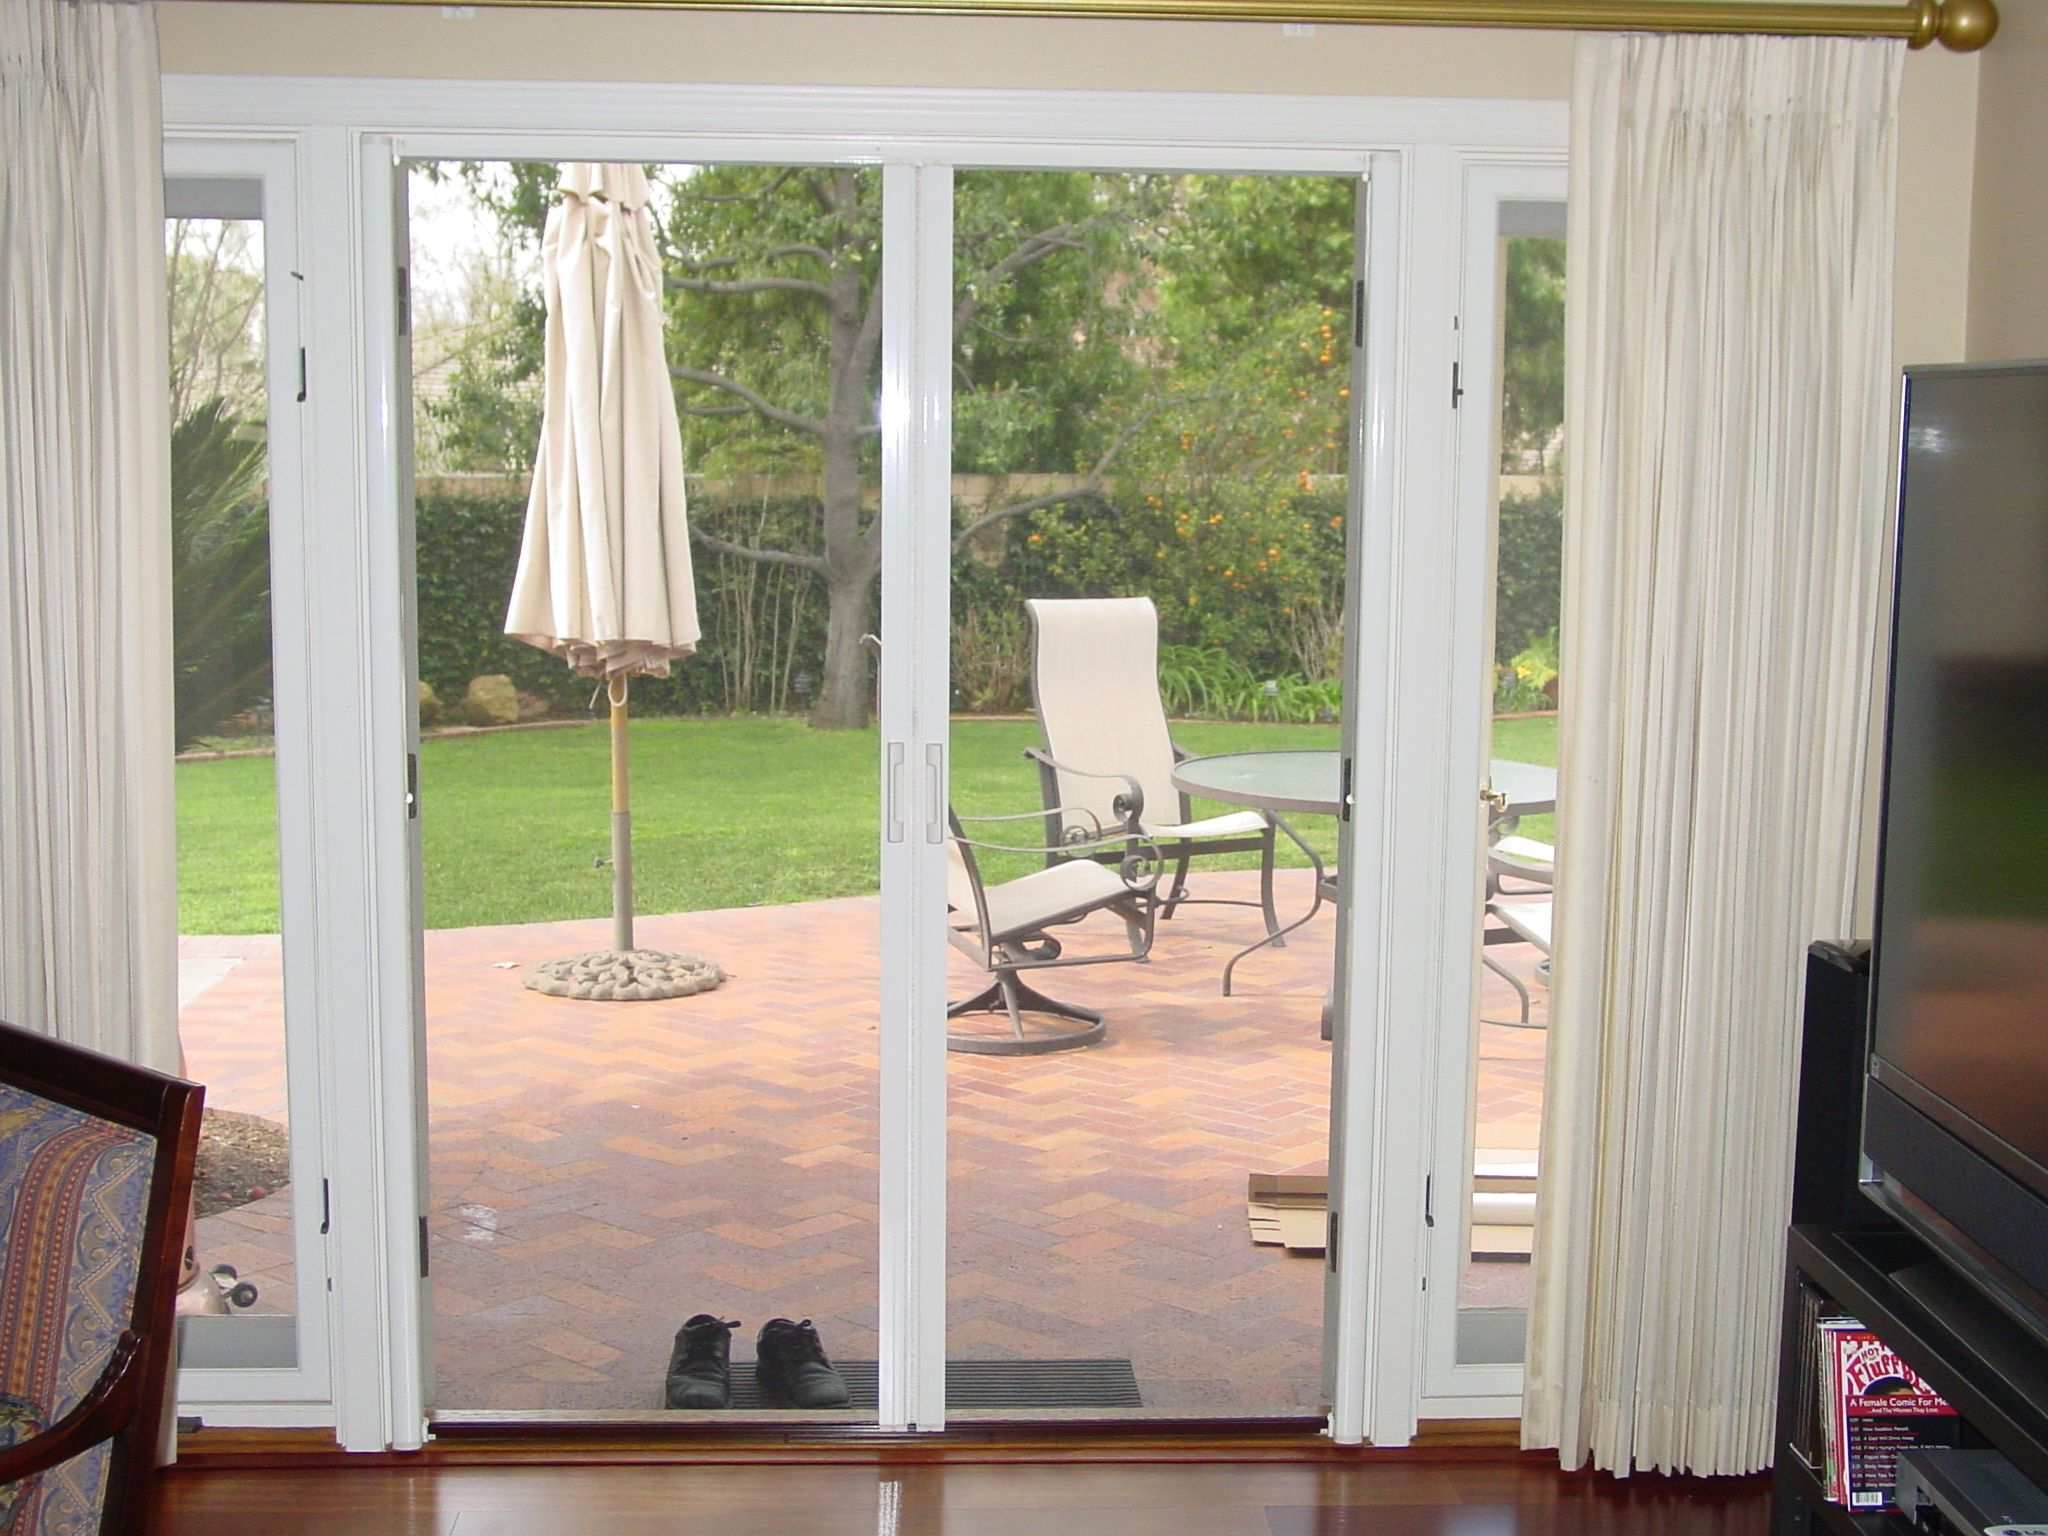 Retractable Screen Door Mounted Inside Home. Doors Swing Out. Bright White.  Photo By Classic Home Improvement Products Of Anaheim Hills, California